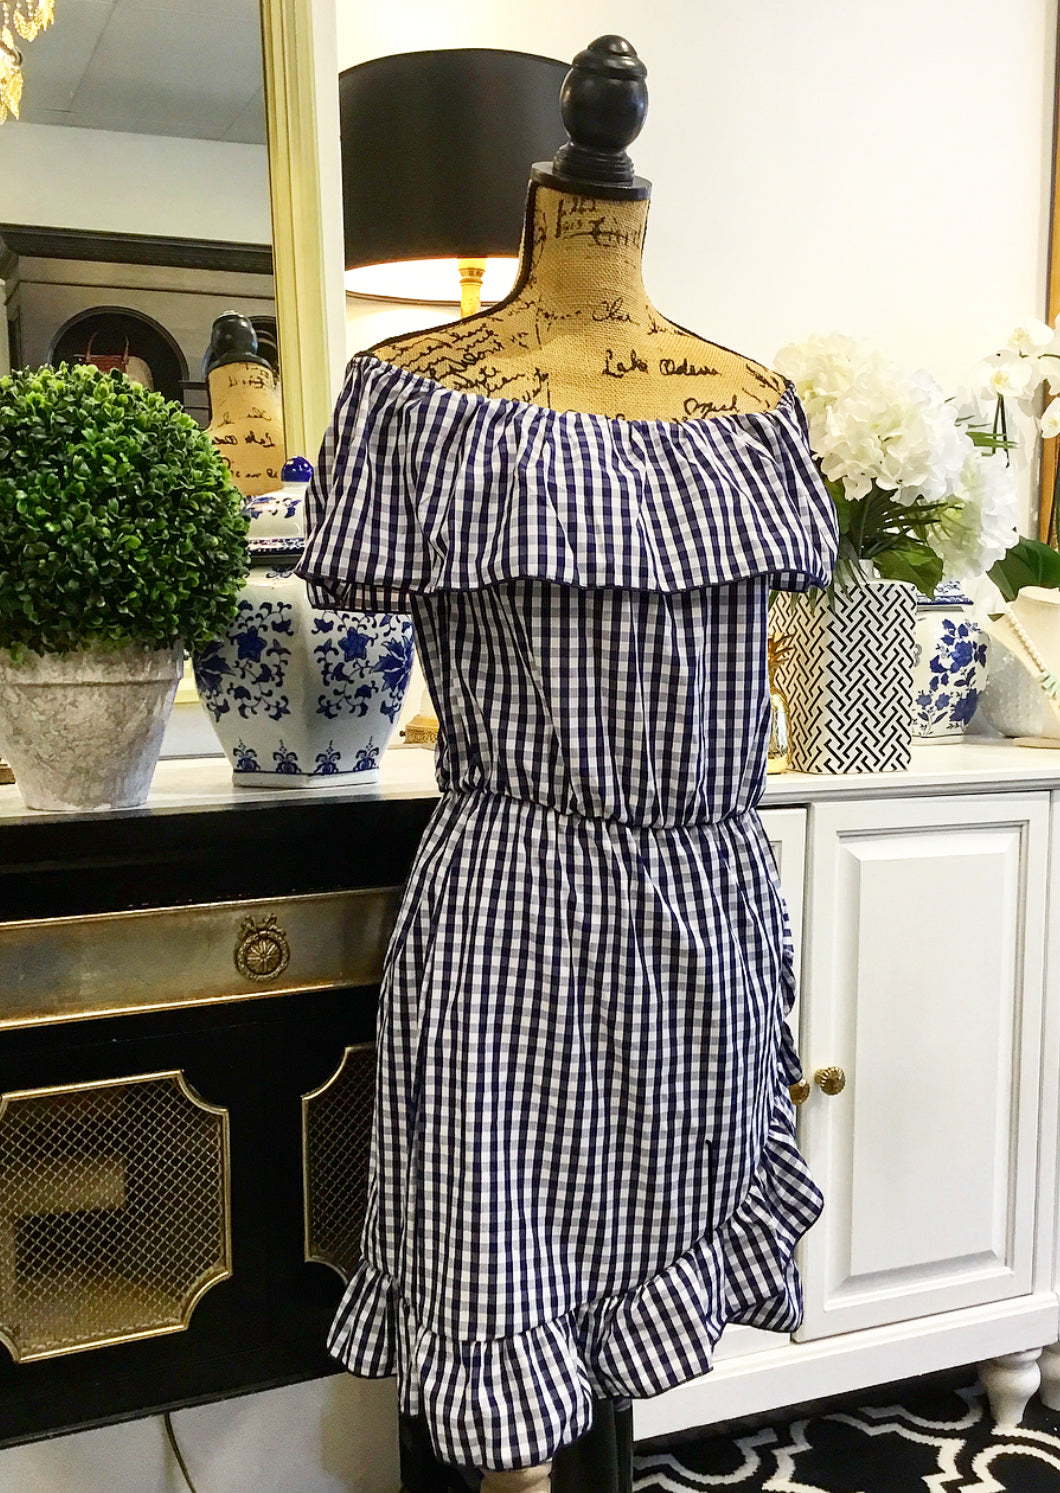 Chic Peek: The Perfect Blue and White Gingham Dress for Spring and Summer from Teramasu